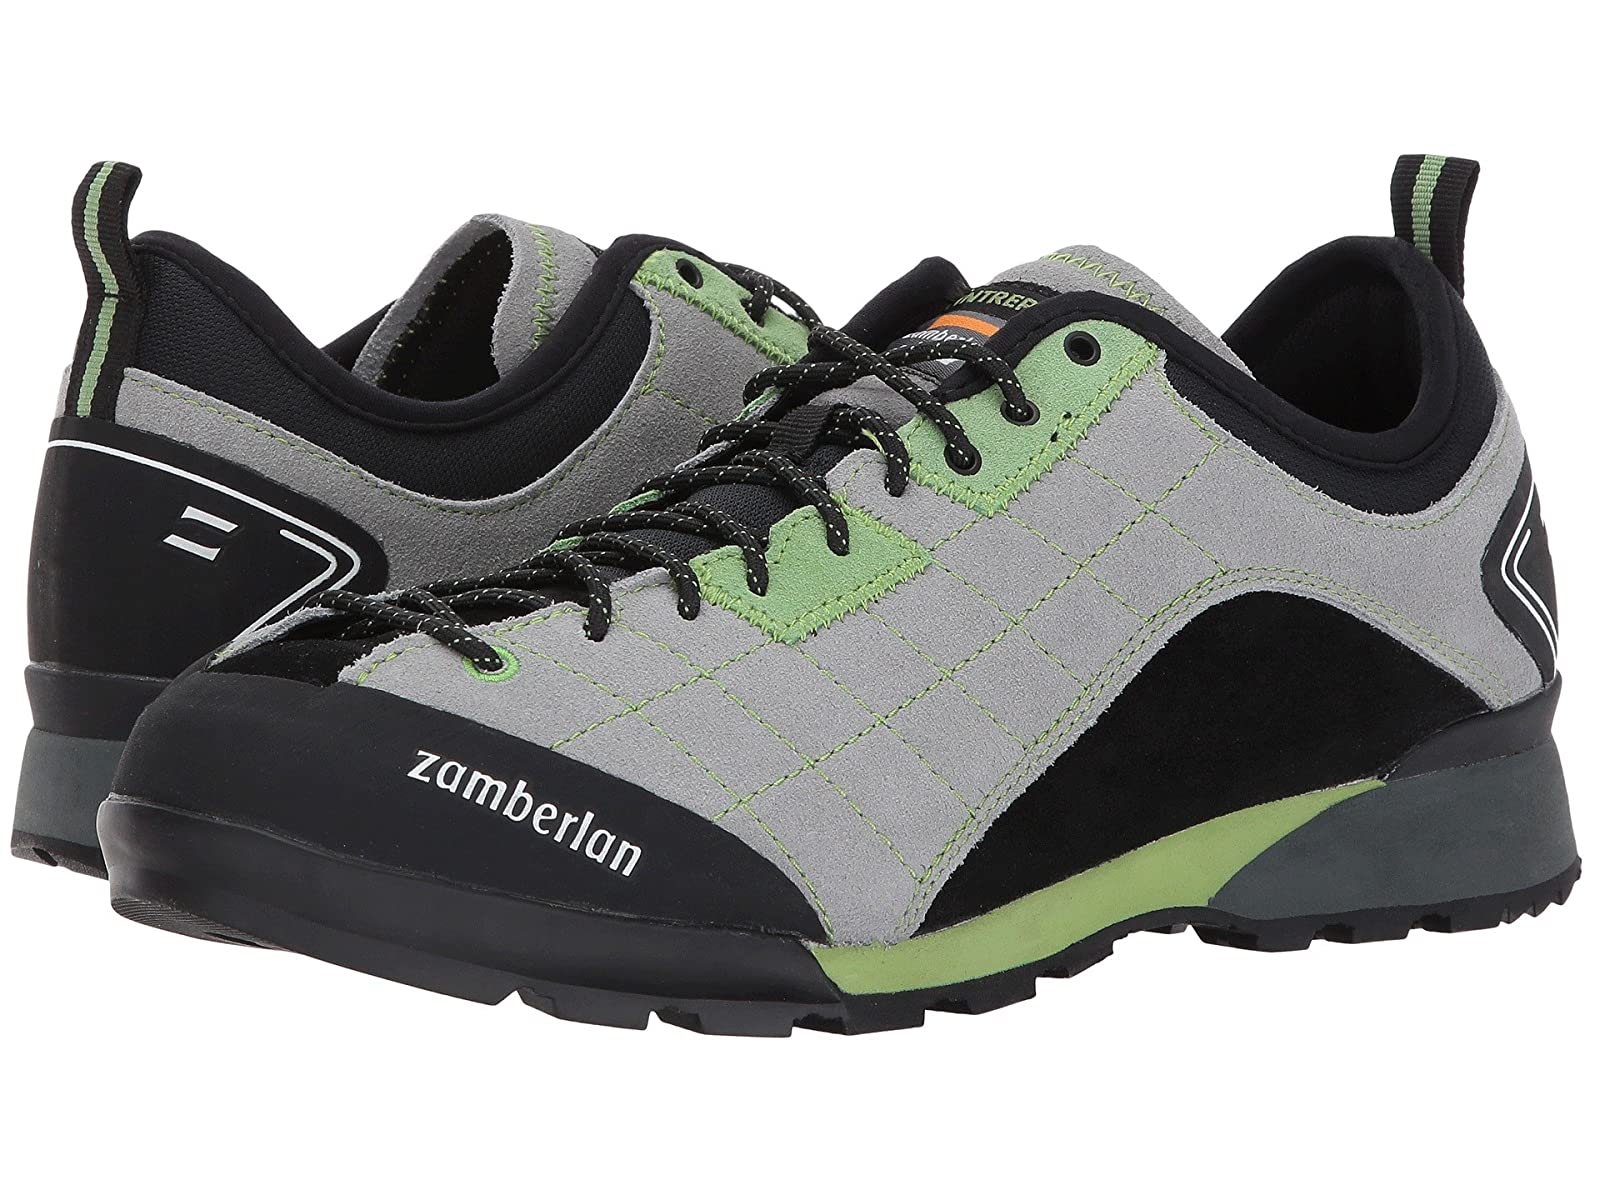 Zamberlan Intrepid RRAtmospheric grades have affordable shoes